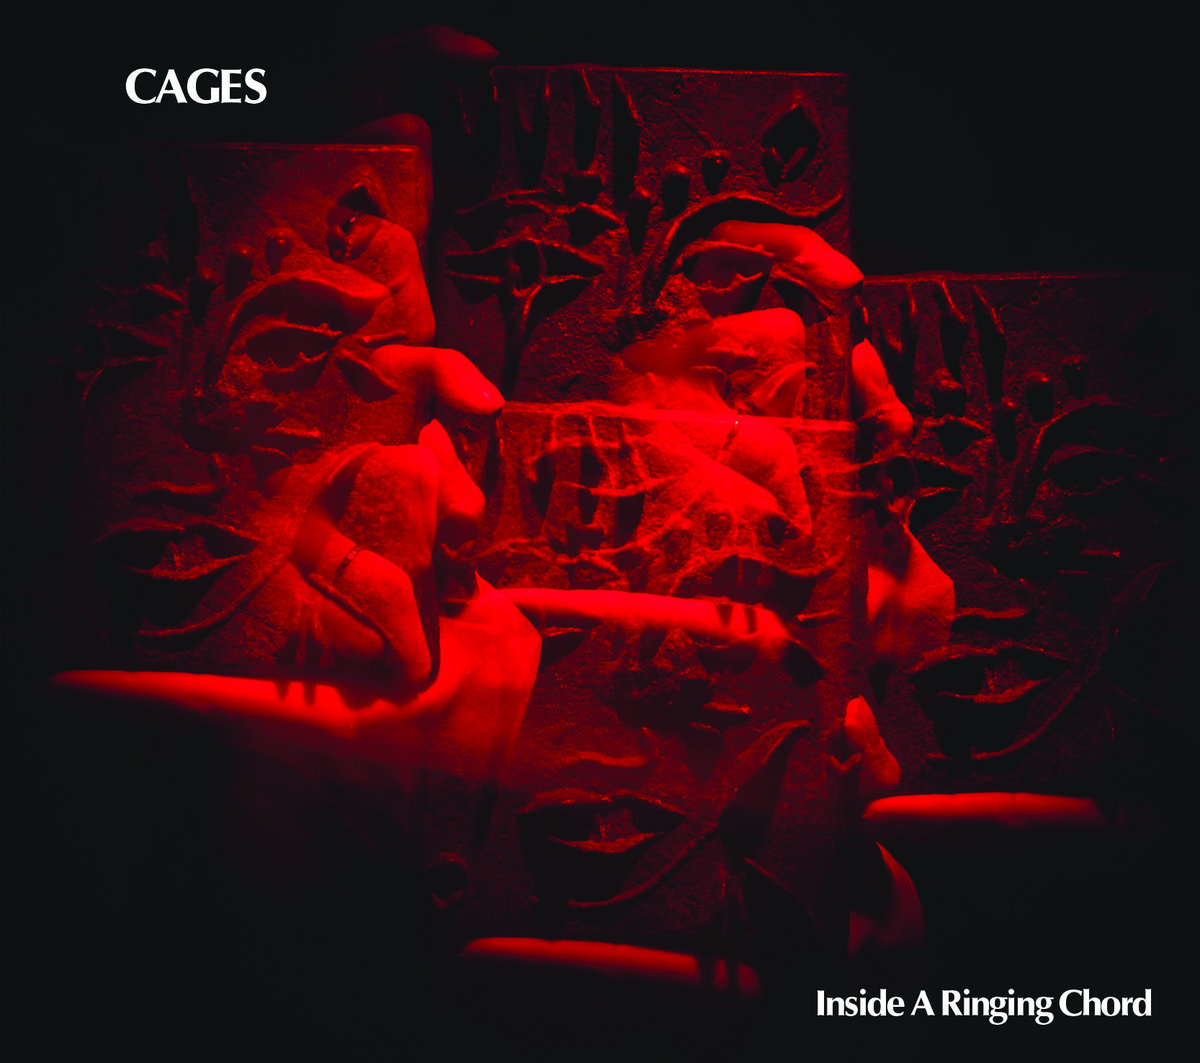 Inside A Ringing Chord Cages